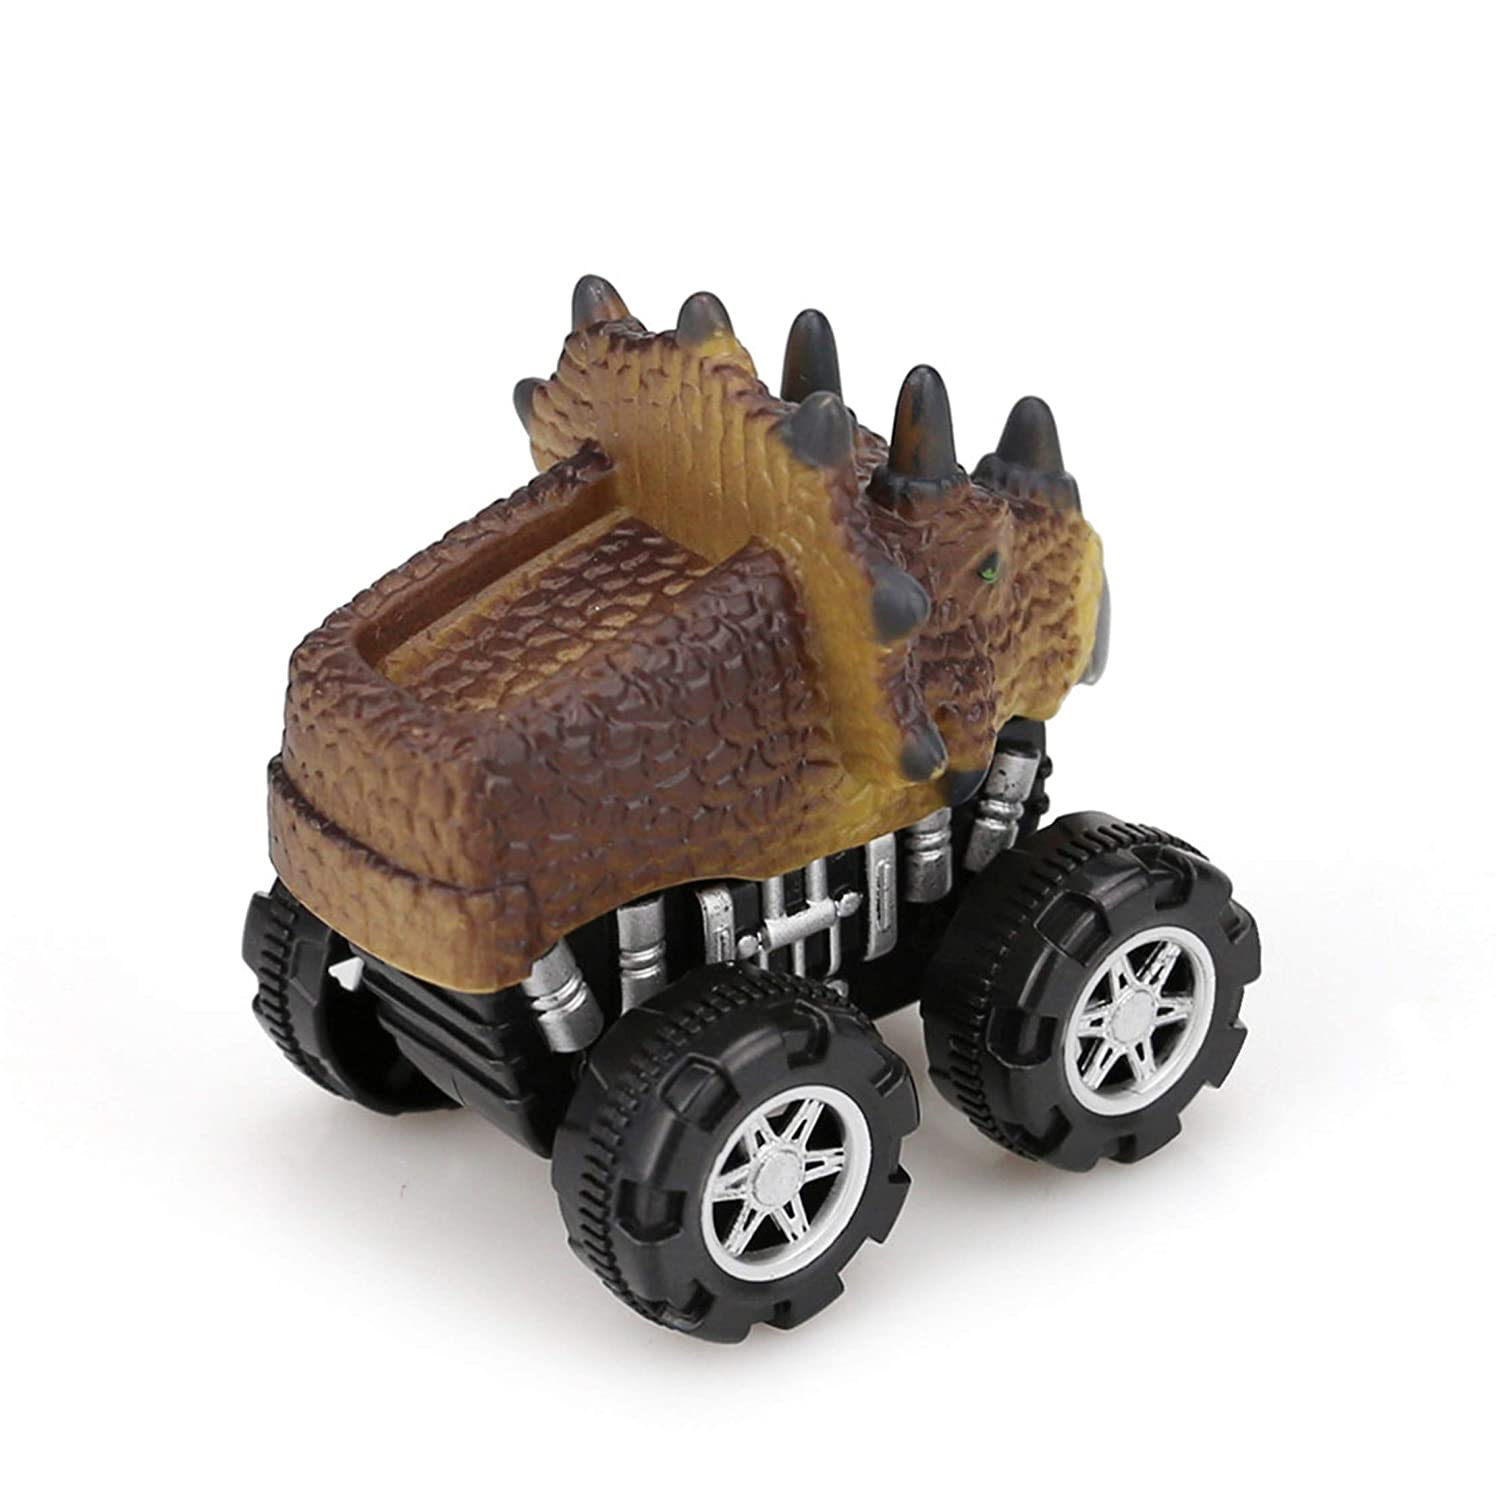 Happy Event Dinosaur Turtle Dolphin Rhino Friction Driven Car Retract Mini Animal Car Toy Gifts Ki